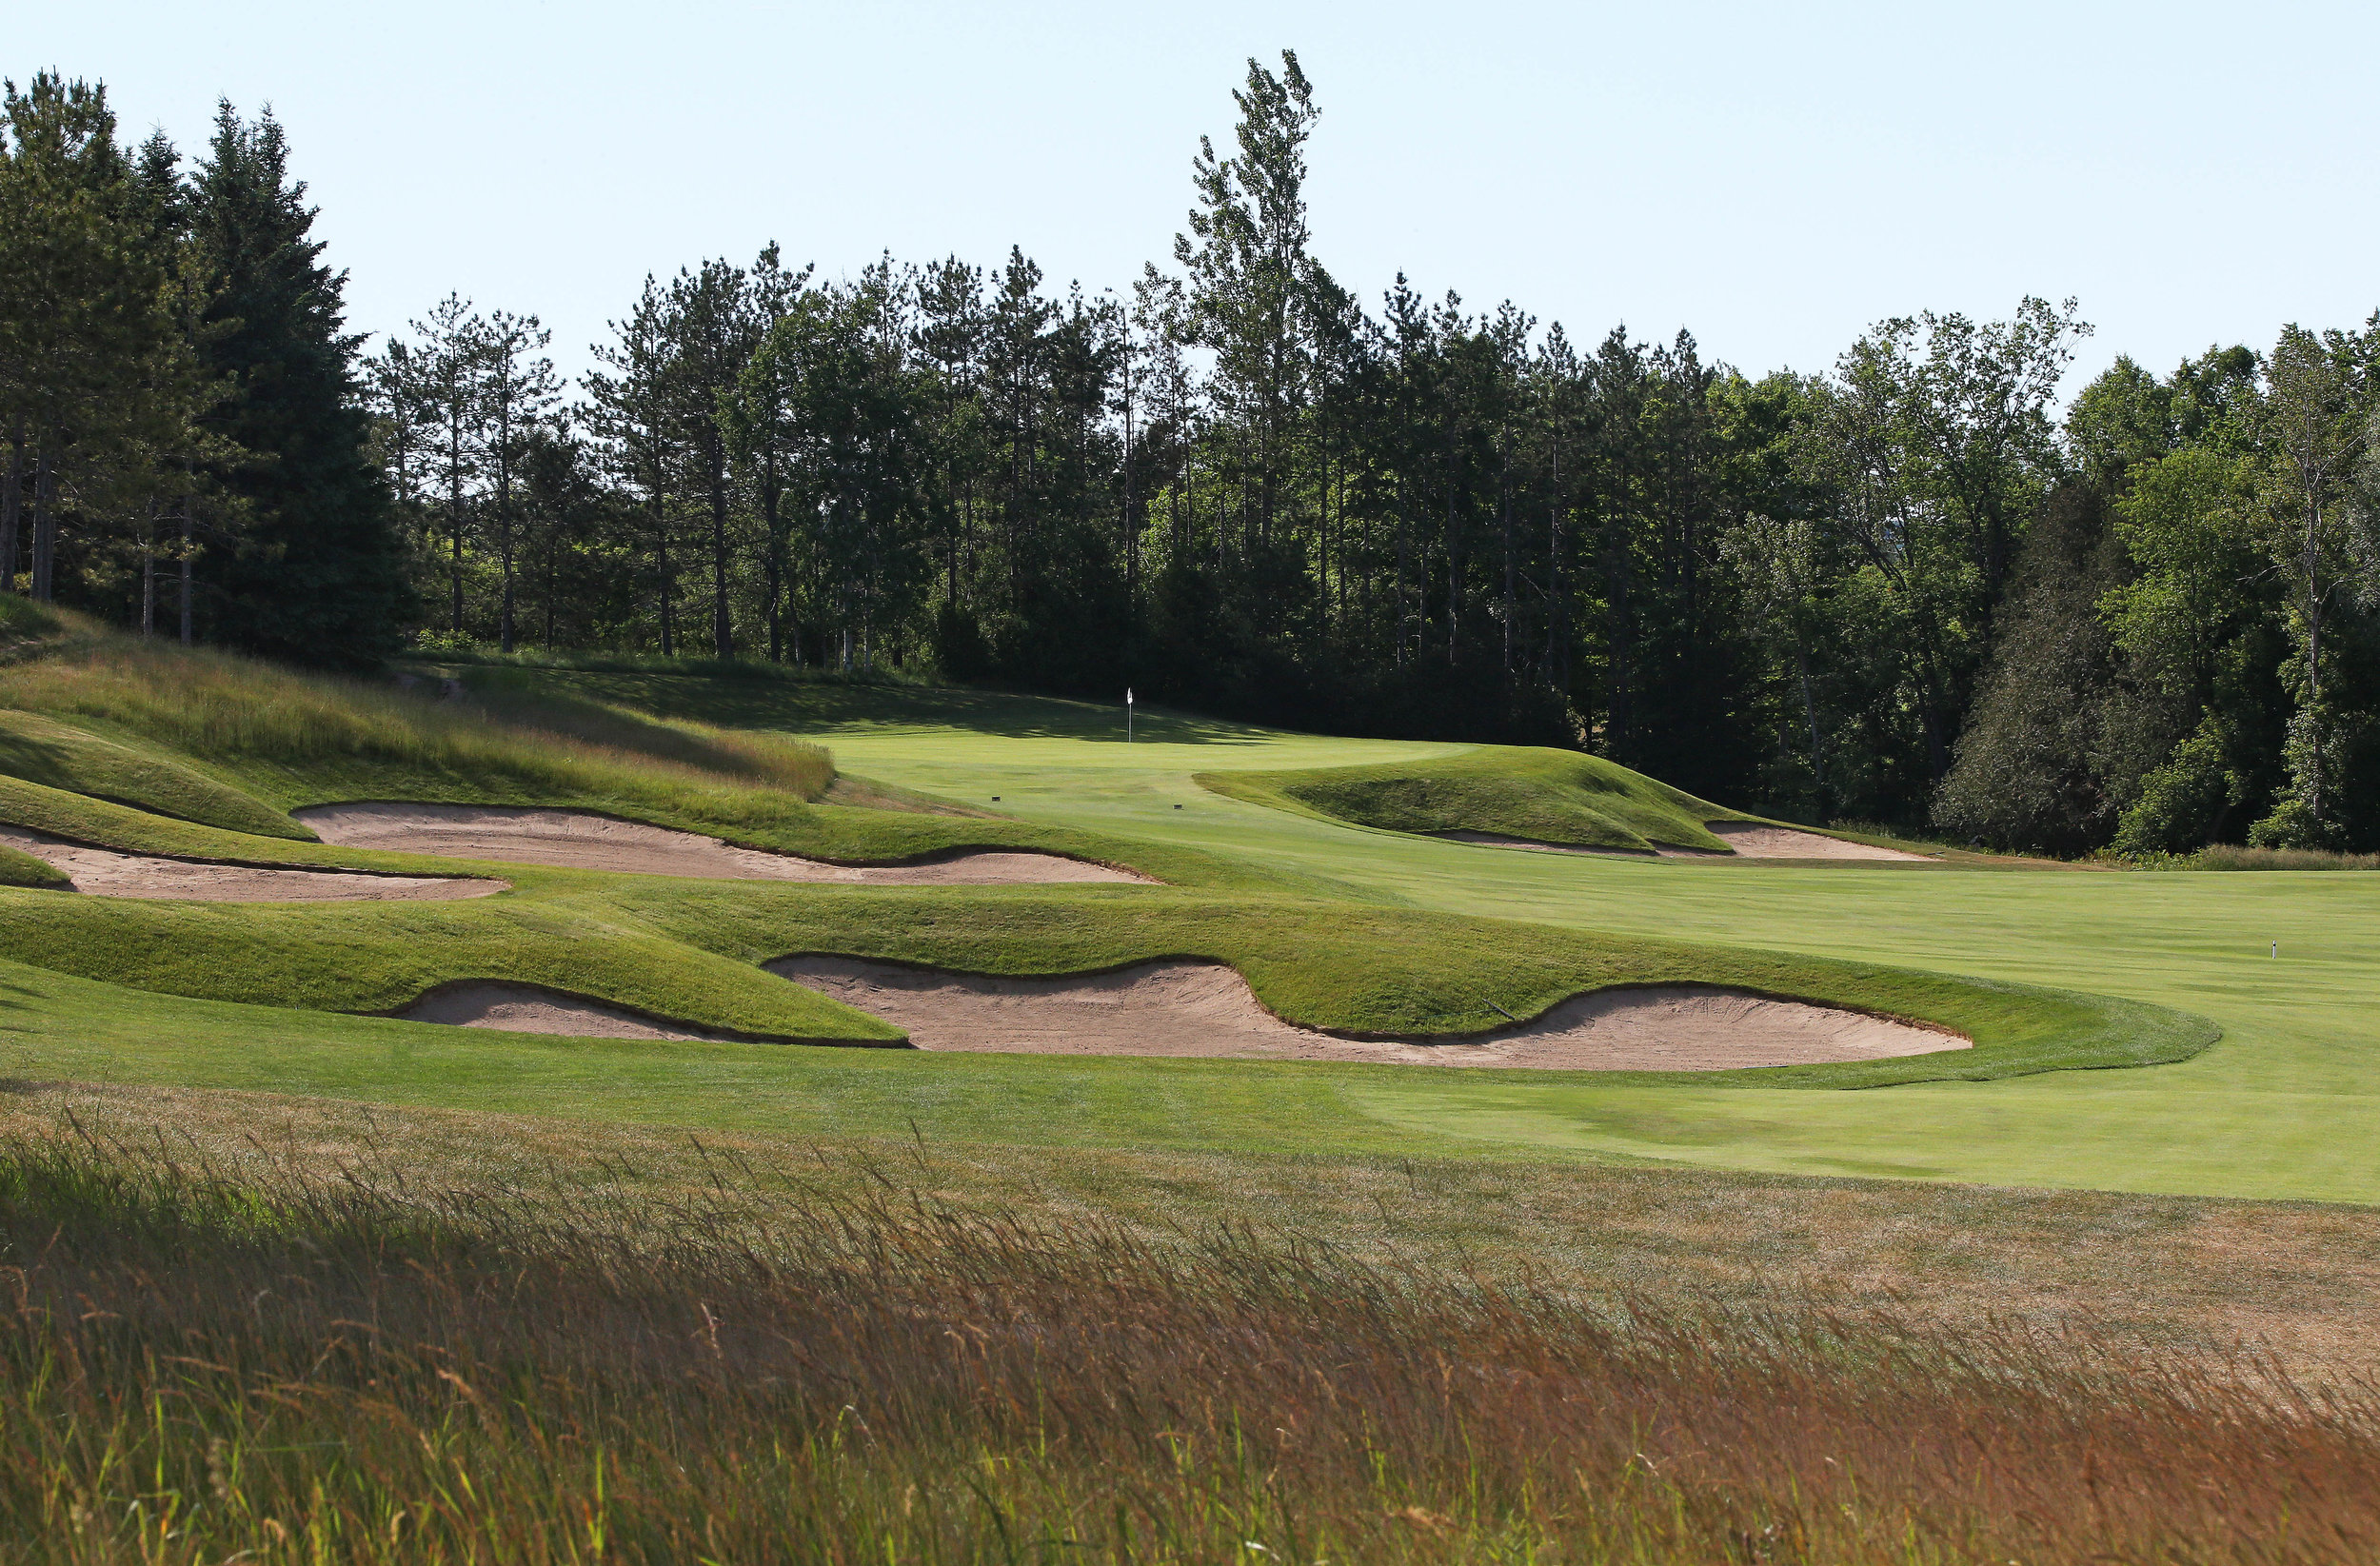 The second green (Photo by Claus Andersen)